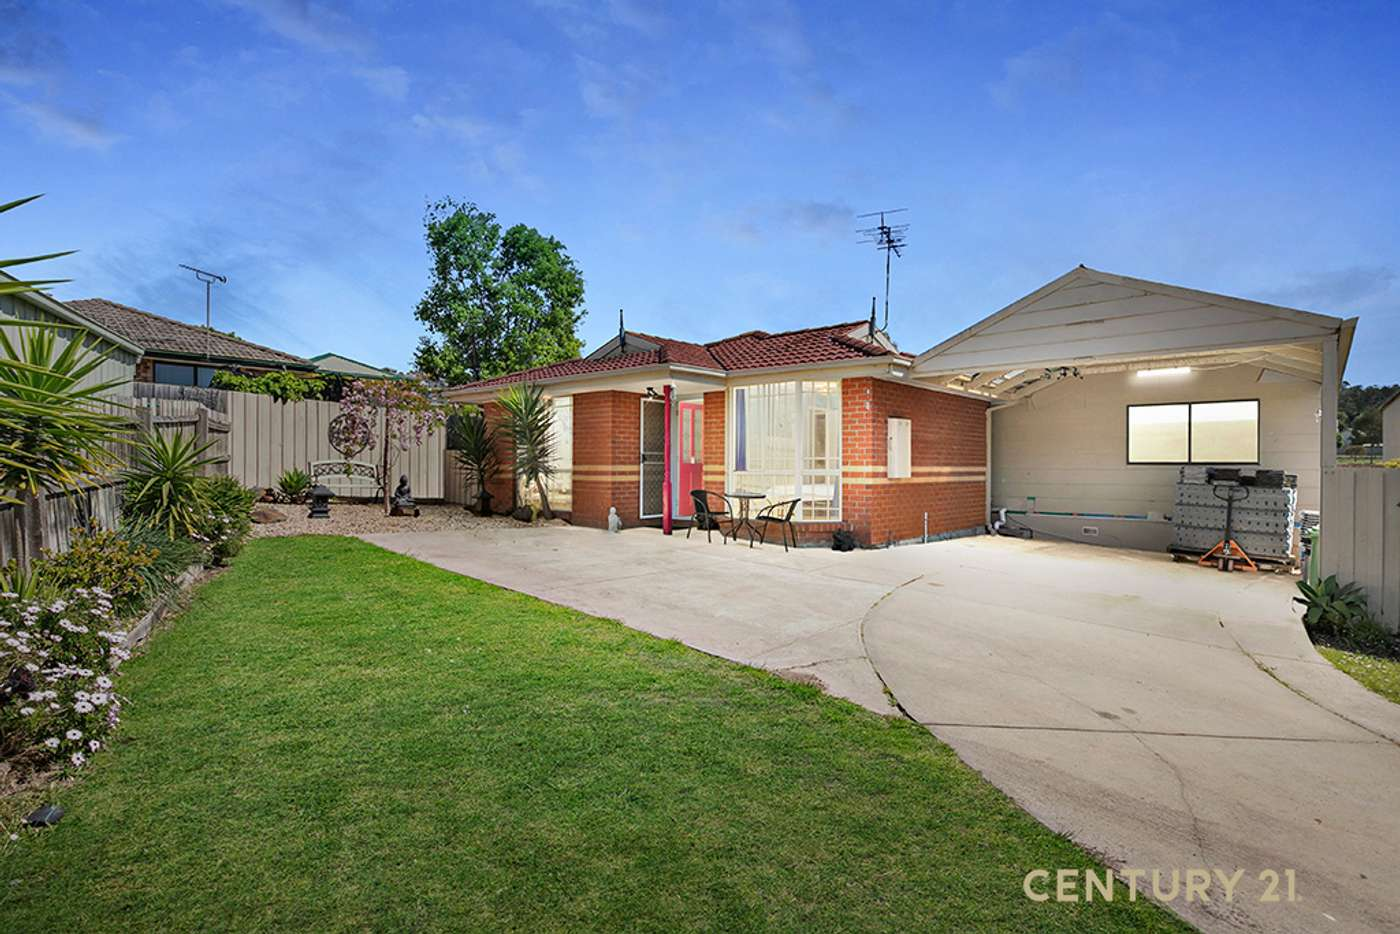 Main view of Homely house listing, 4 Bruce Court, Pakenham VIC 3810